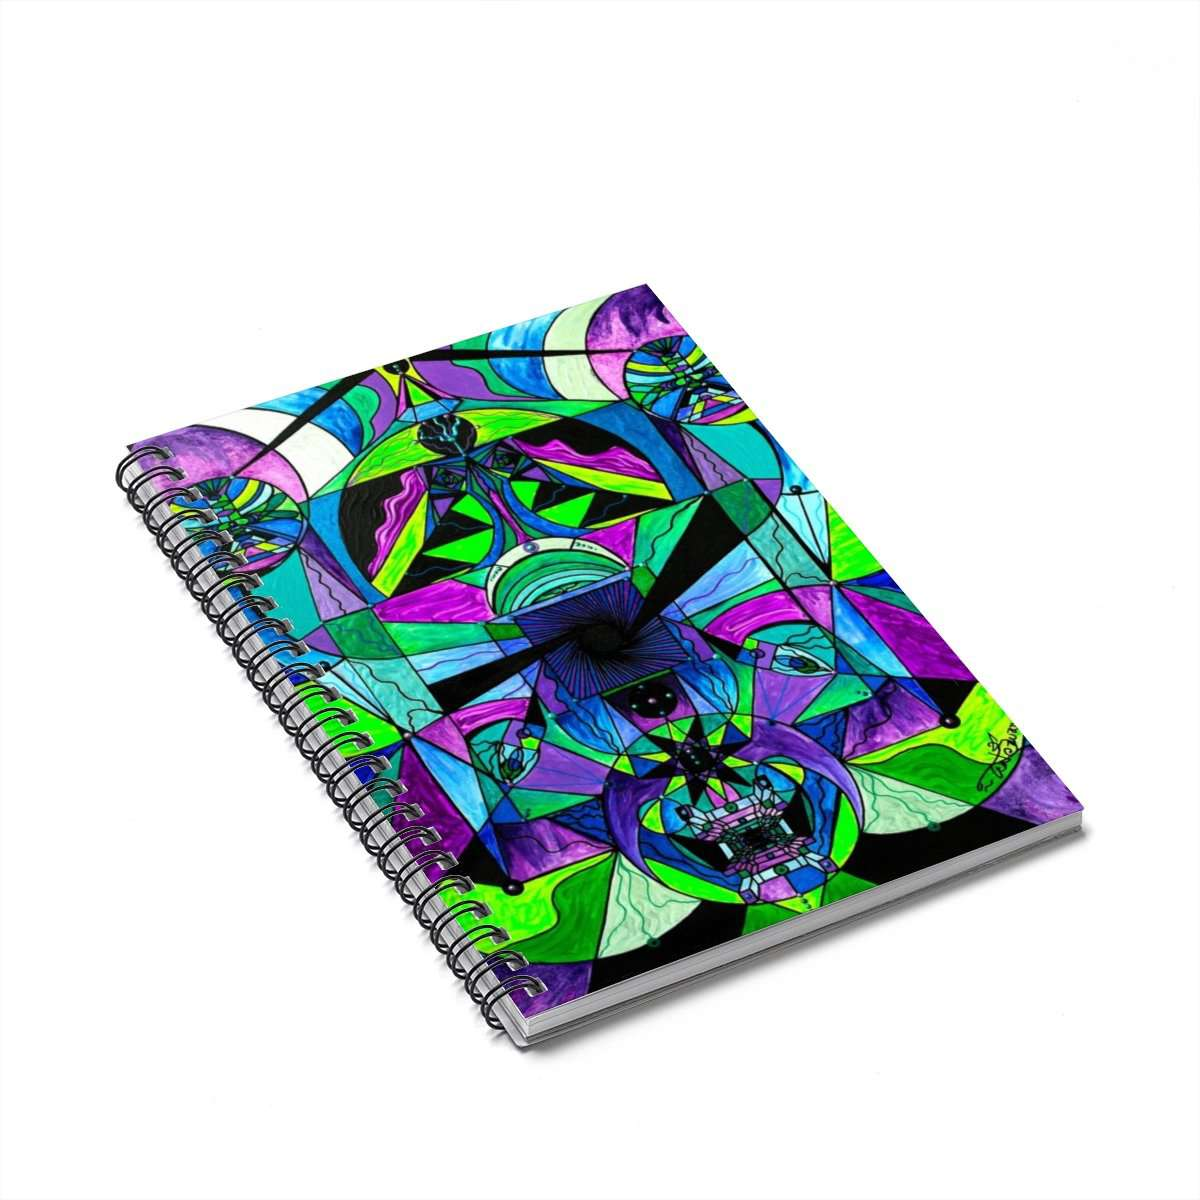 Arcturian Astral Travel Grid - Spiral Notebook